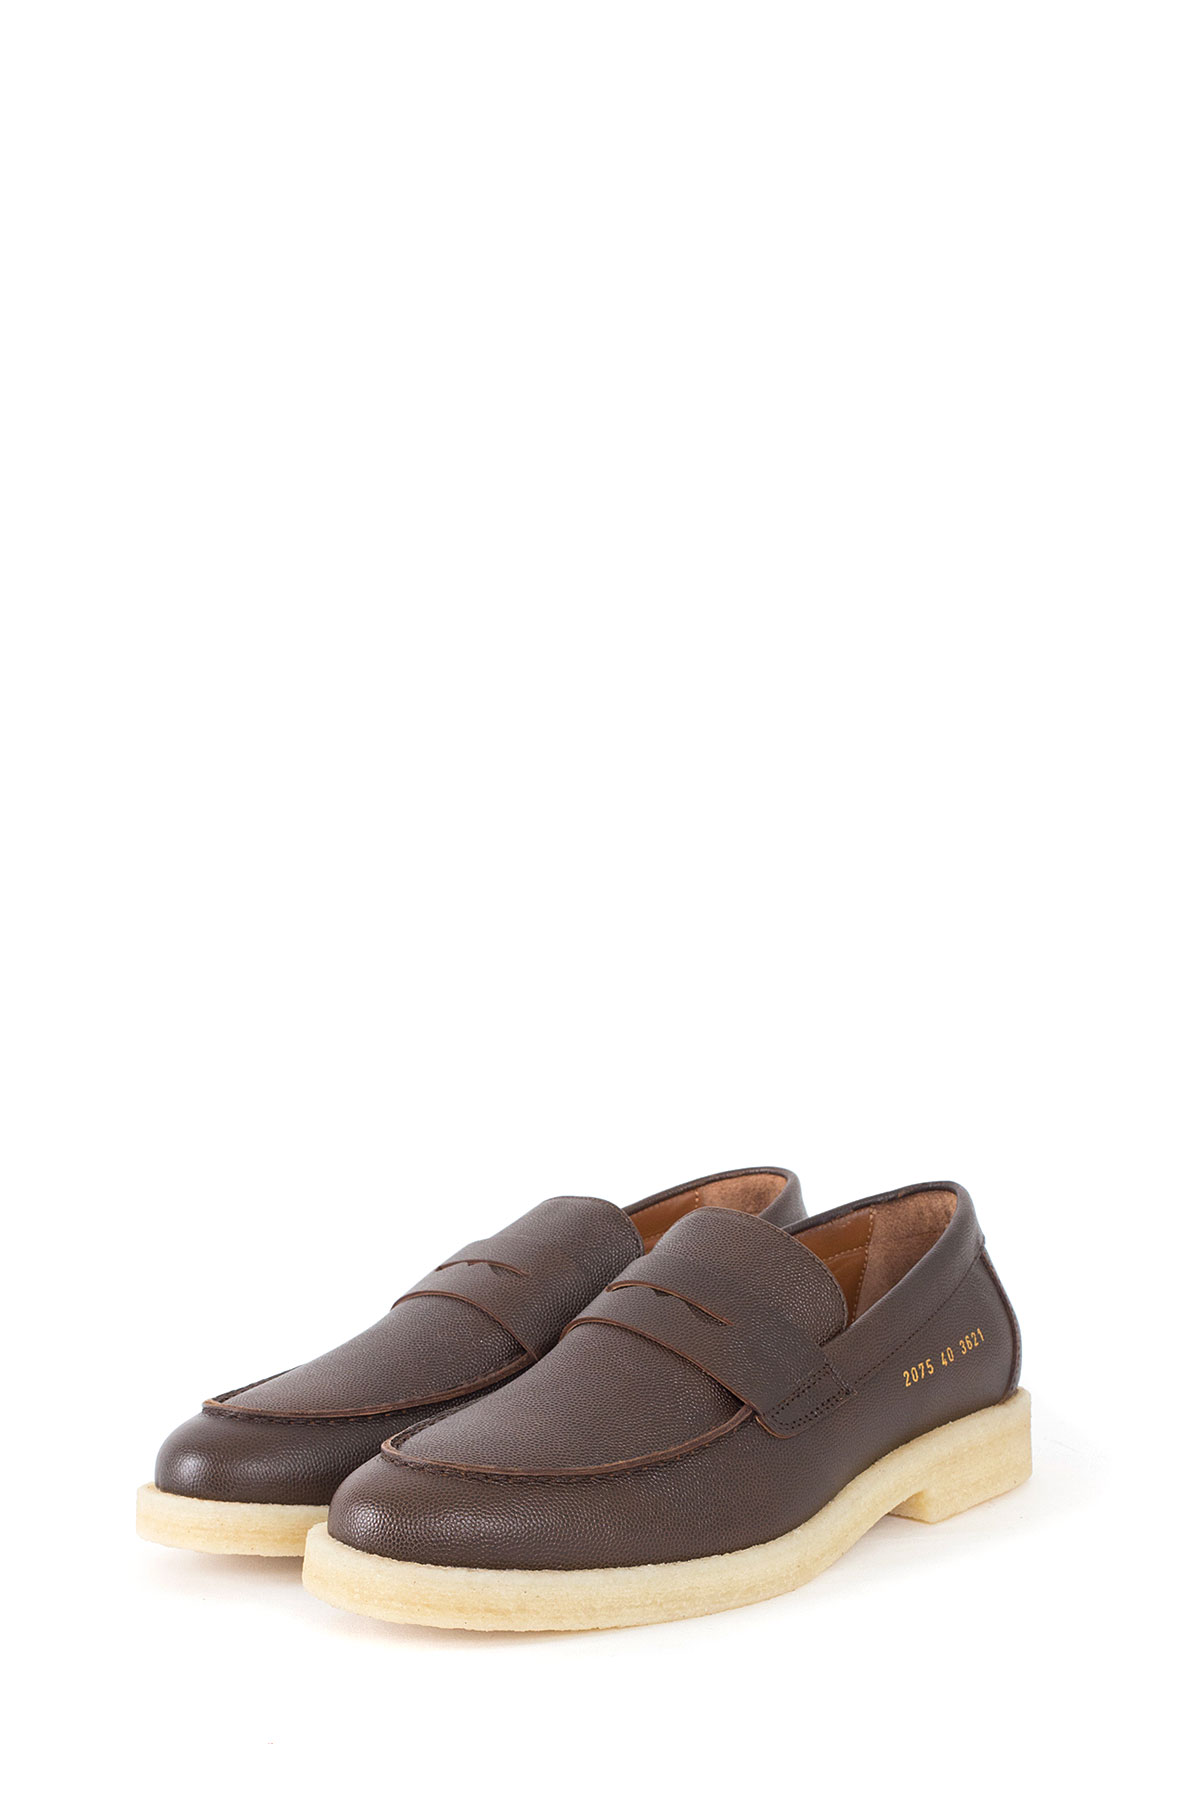 Common Projects : Pebble Grain Leather Penny Loafers (Brown)